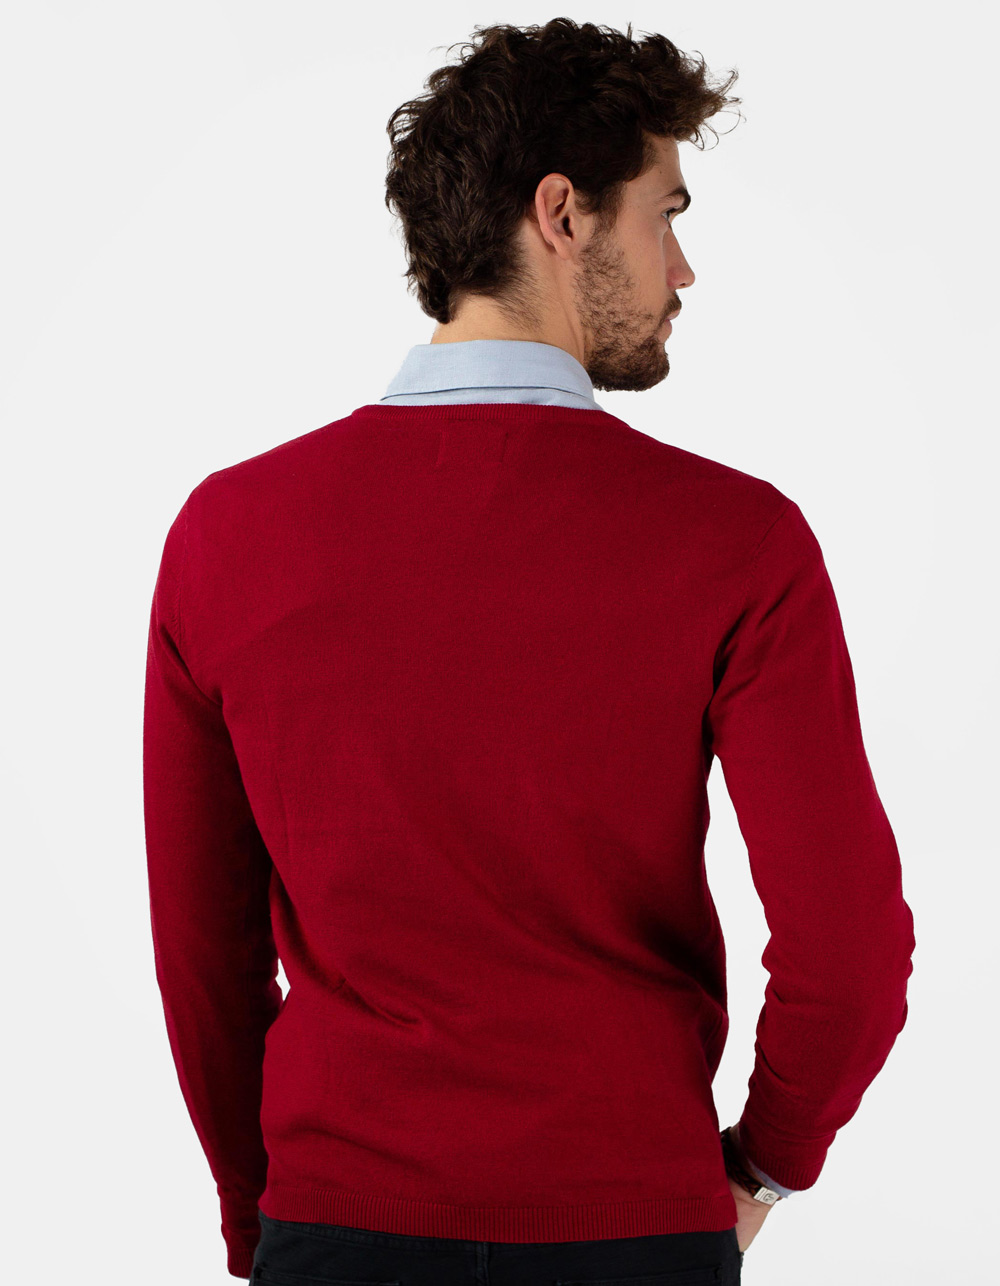 Jersey de cuello pico granate - Backside